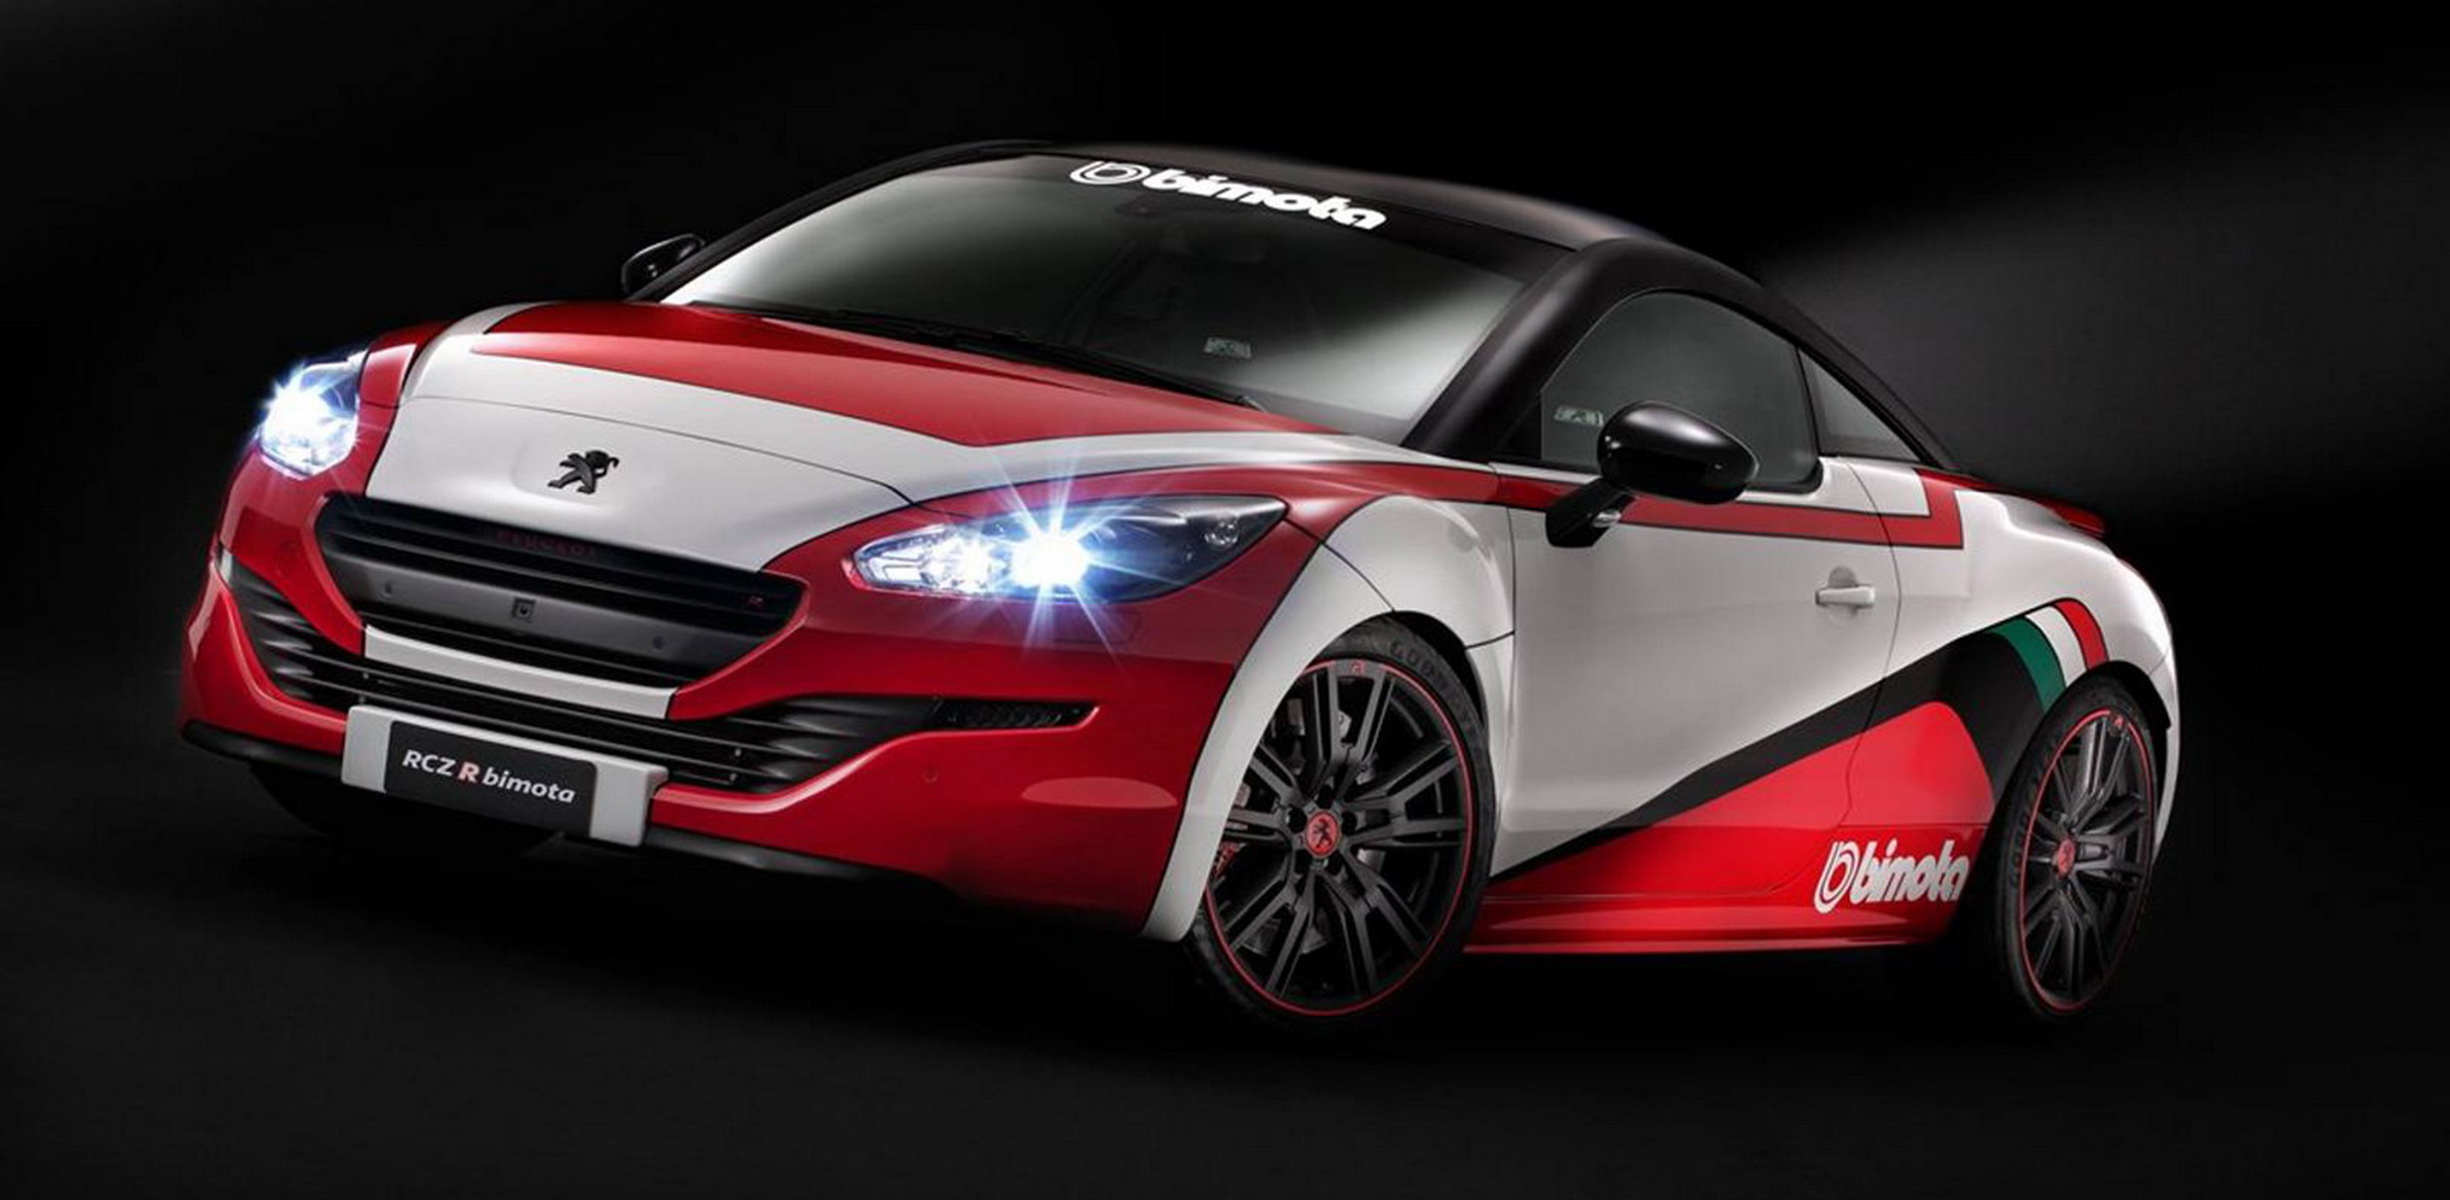 peugeot rcz r bimota boasts 224kw 1 6 litre turbo engine photos 1 of 4. Black Bedroom Furniture Sets. Home Design Ideas